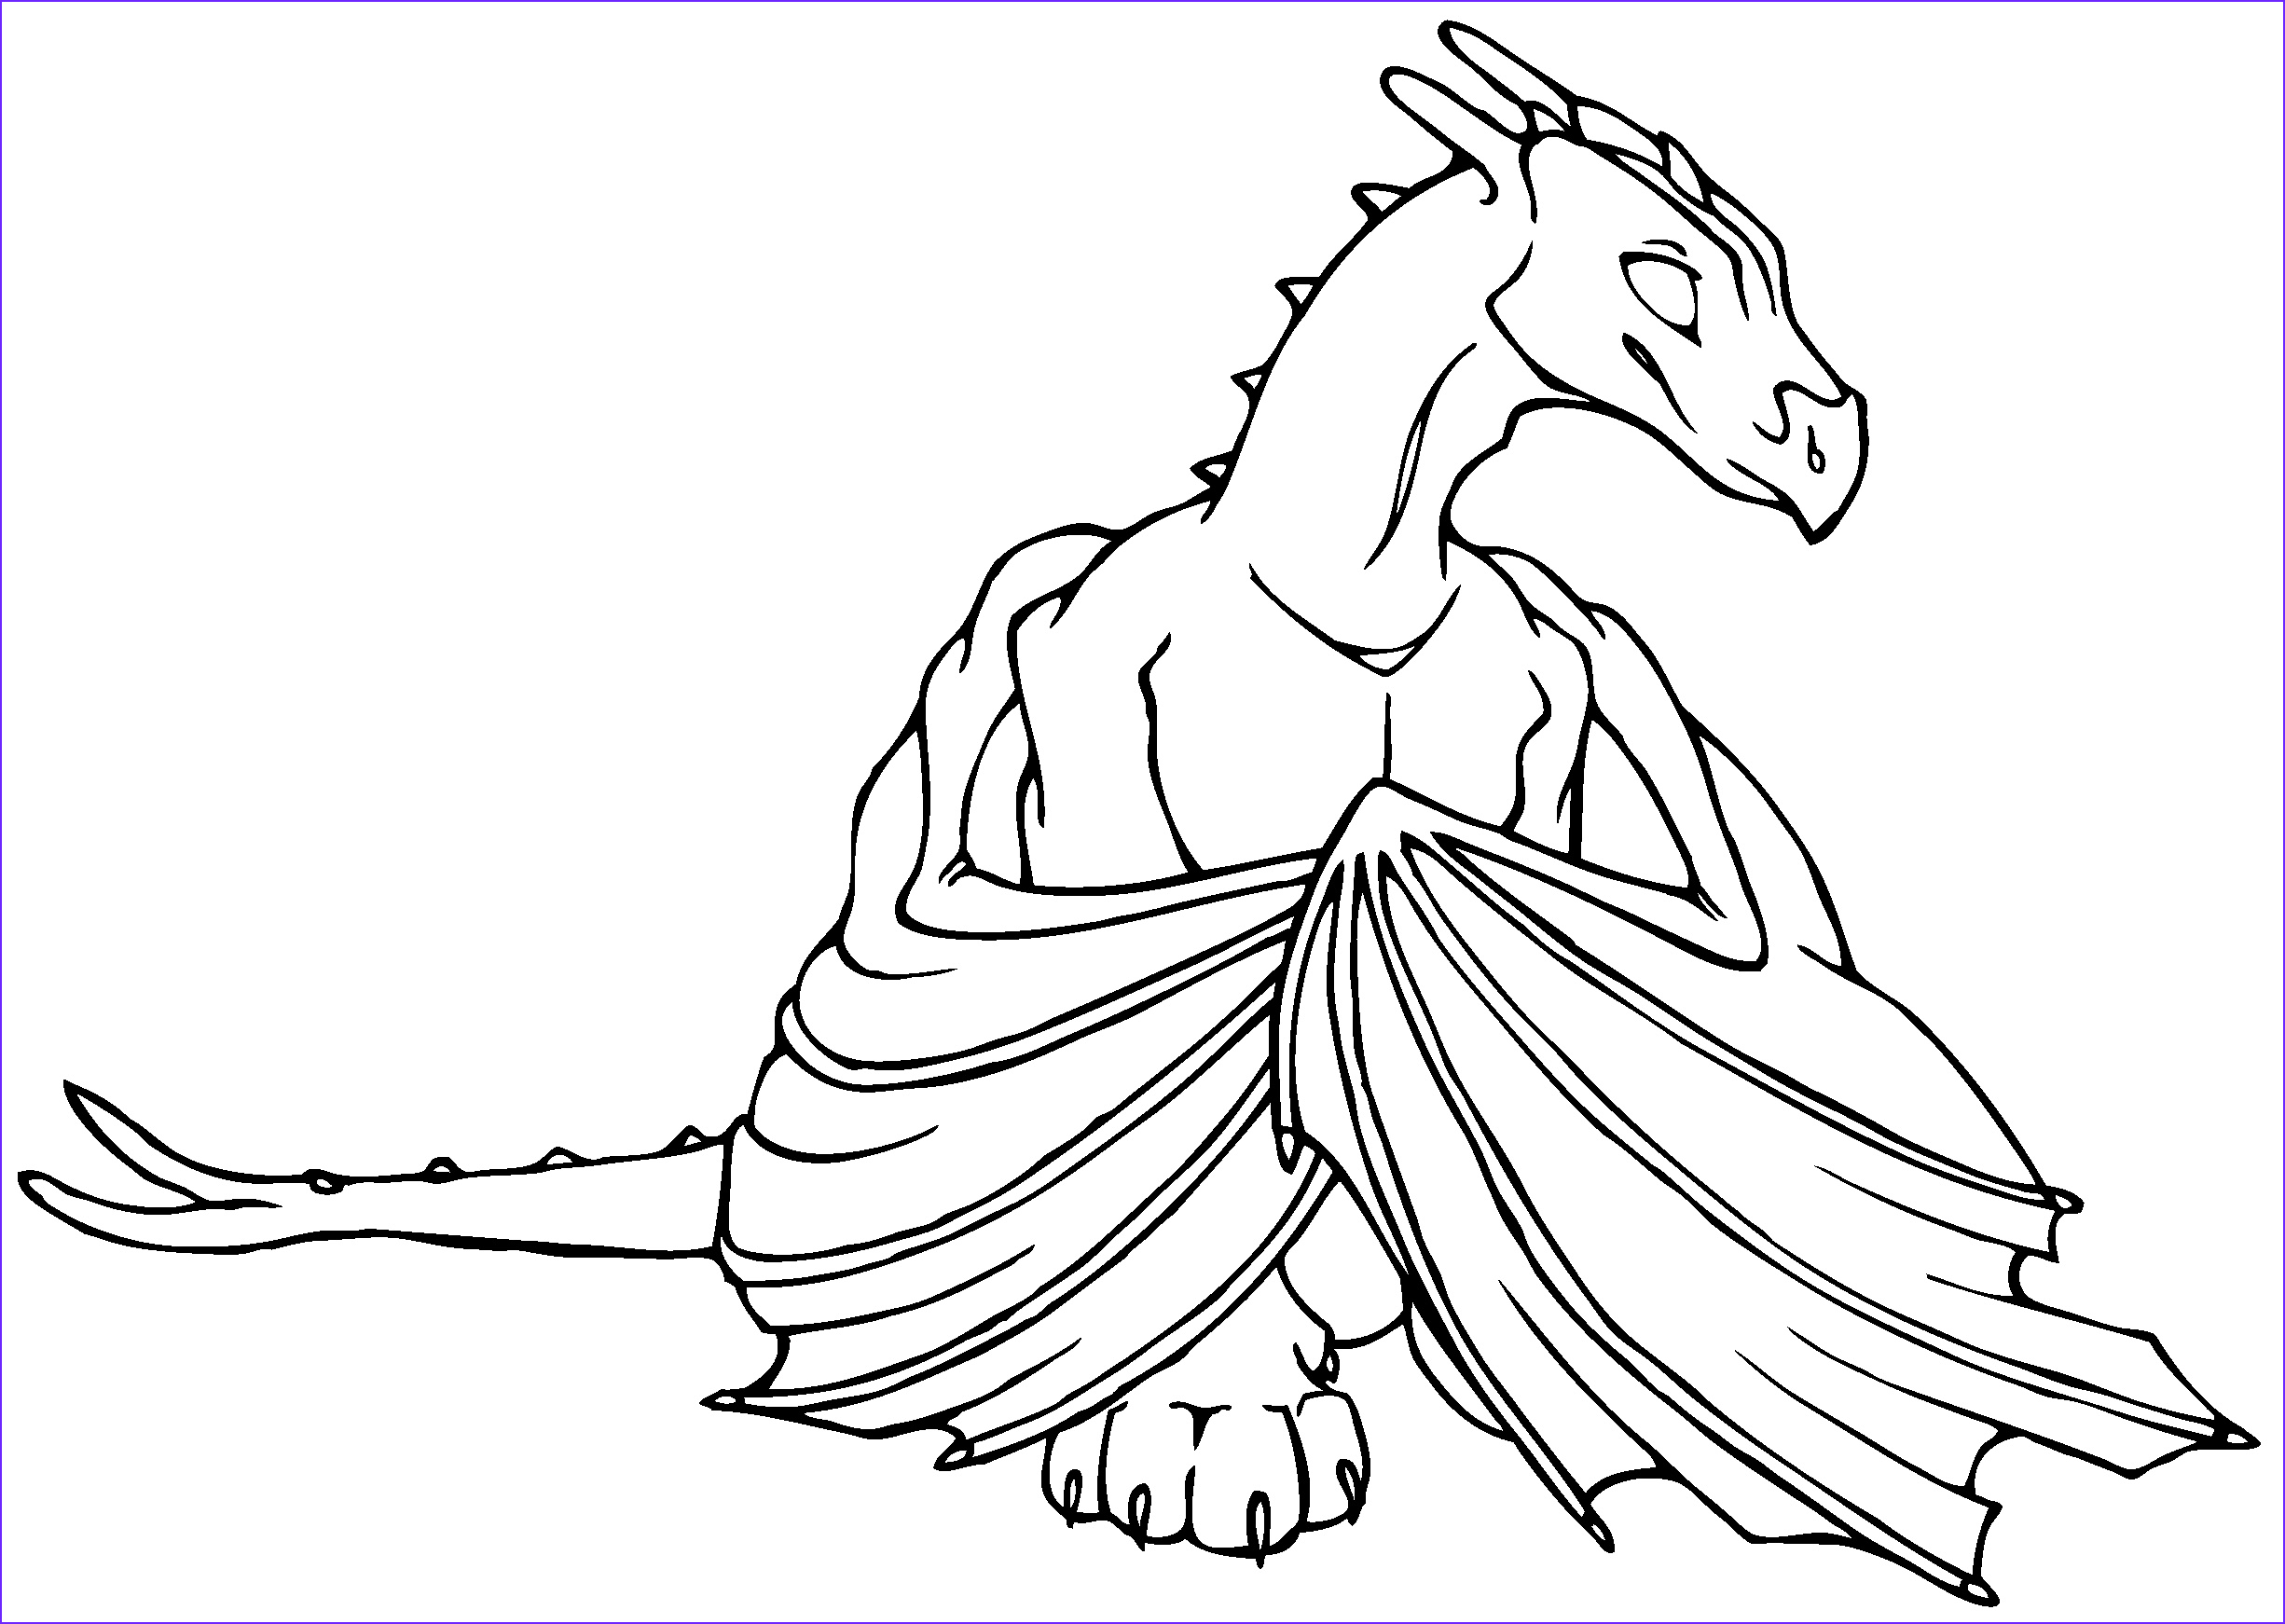 Coloring Page Dragons Inspirational Collection Dragon Coloring Book Xanadu Weyr